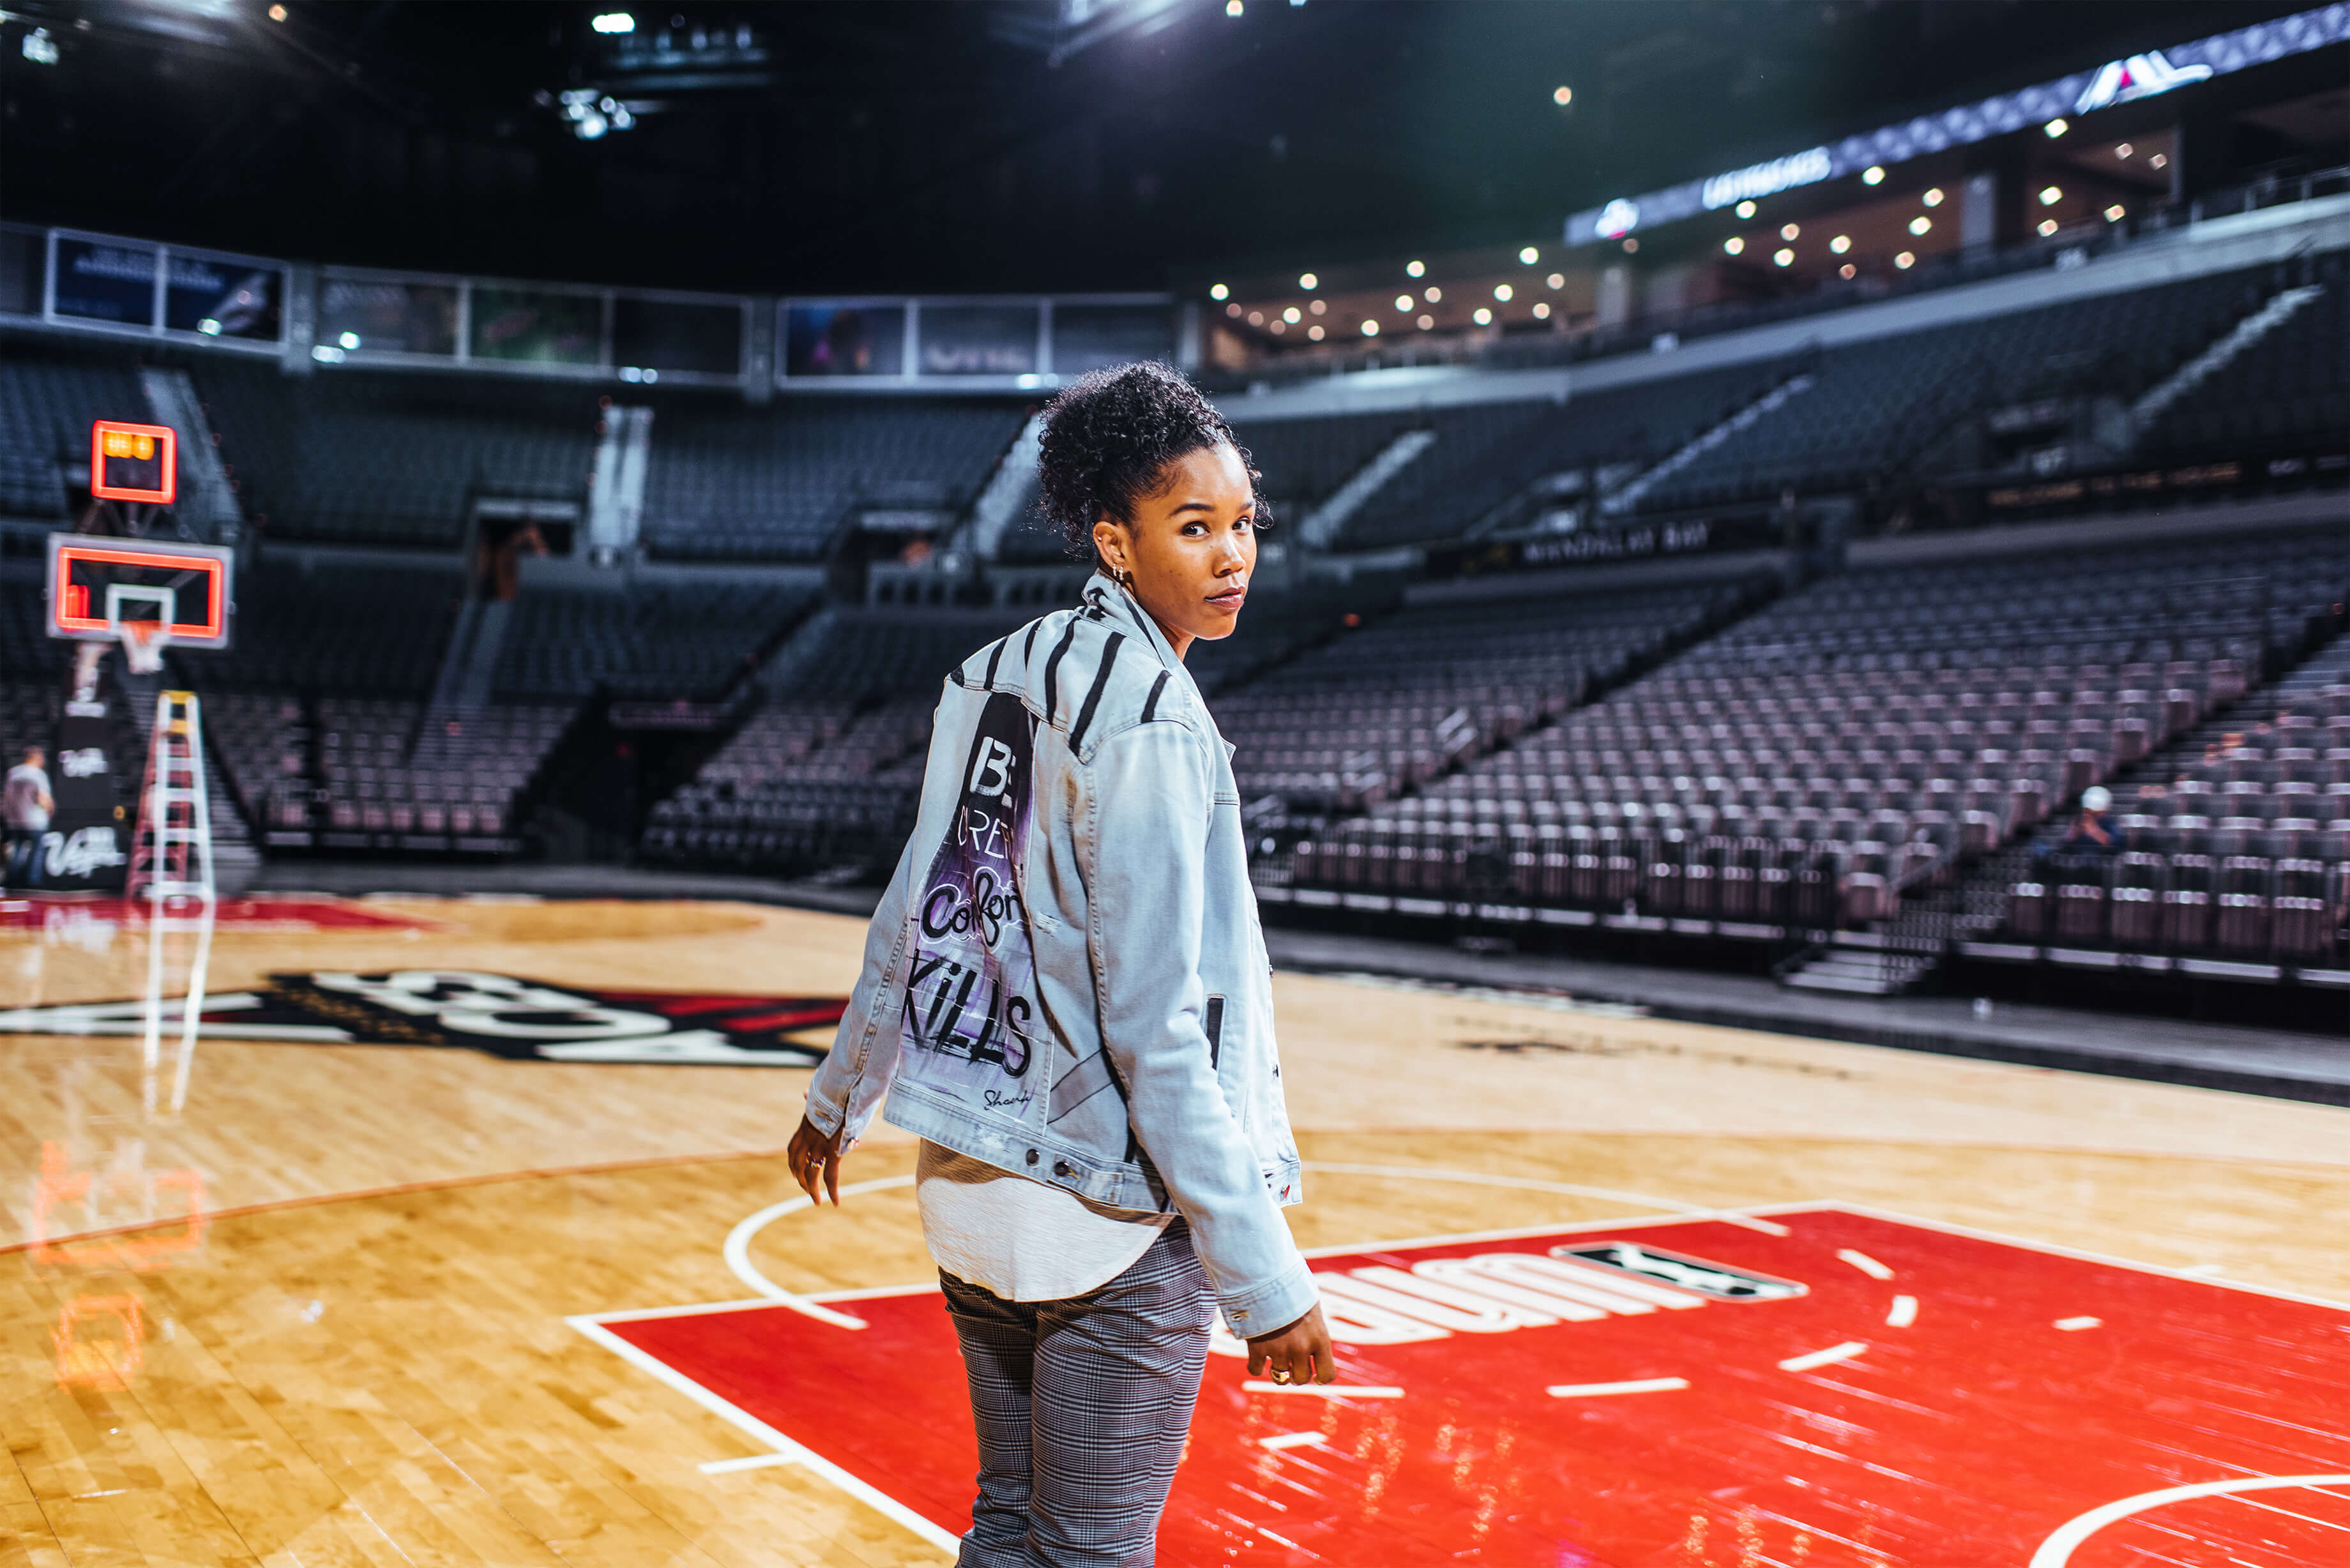 Tamera Young, forward for the Las Vegas Aces, looks back on what inspired her to play professional basketball and the determination it took to fight for what she believes in.